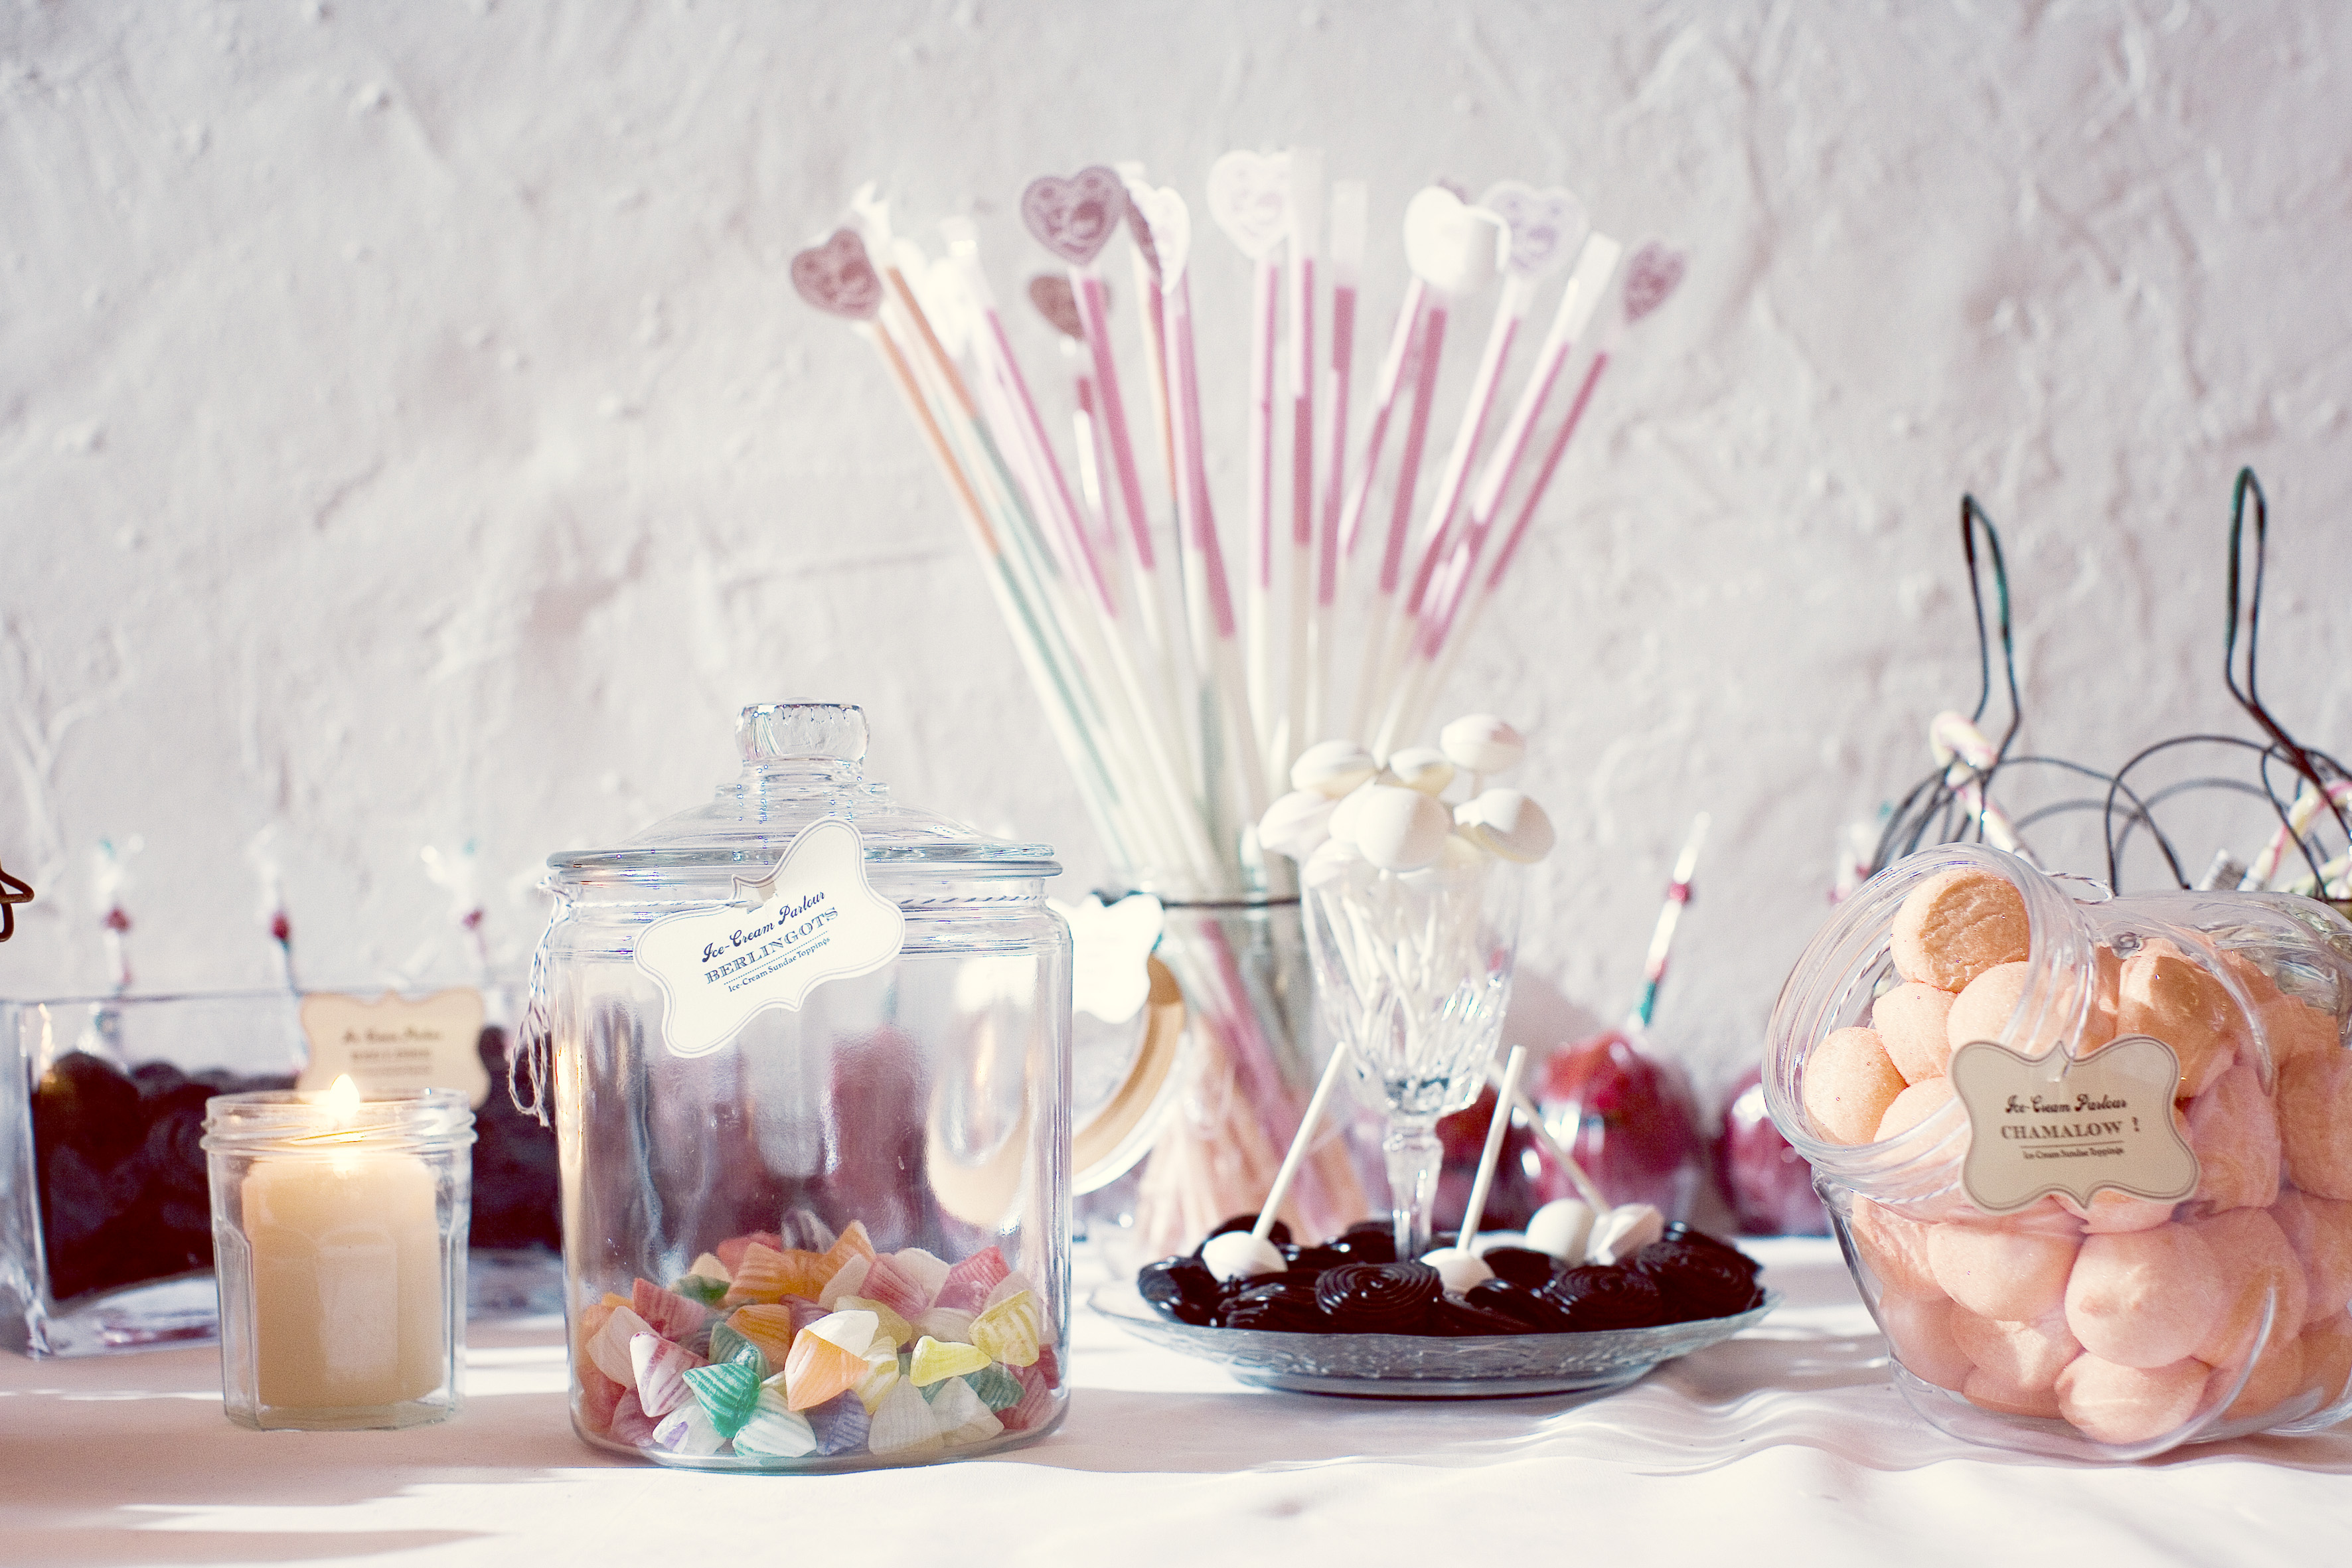 ameliage-candy-bar-romantique-bar-c3a0-bonbons-rc3a9tro-wedding-planner-paris-58